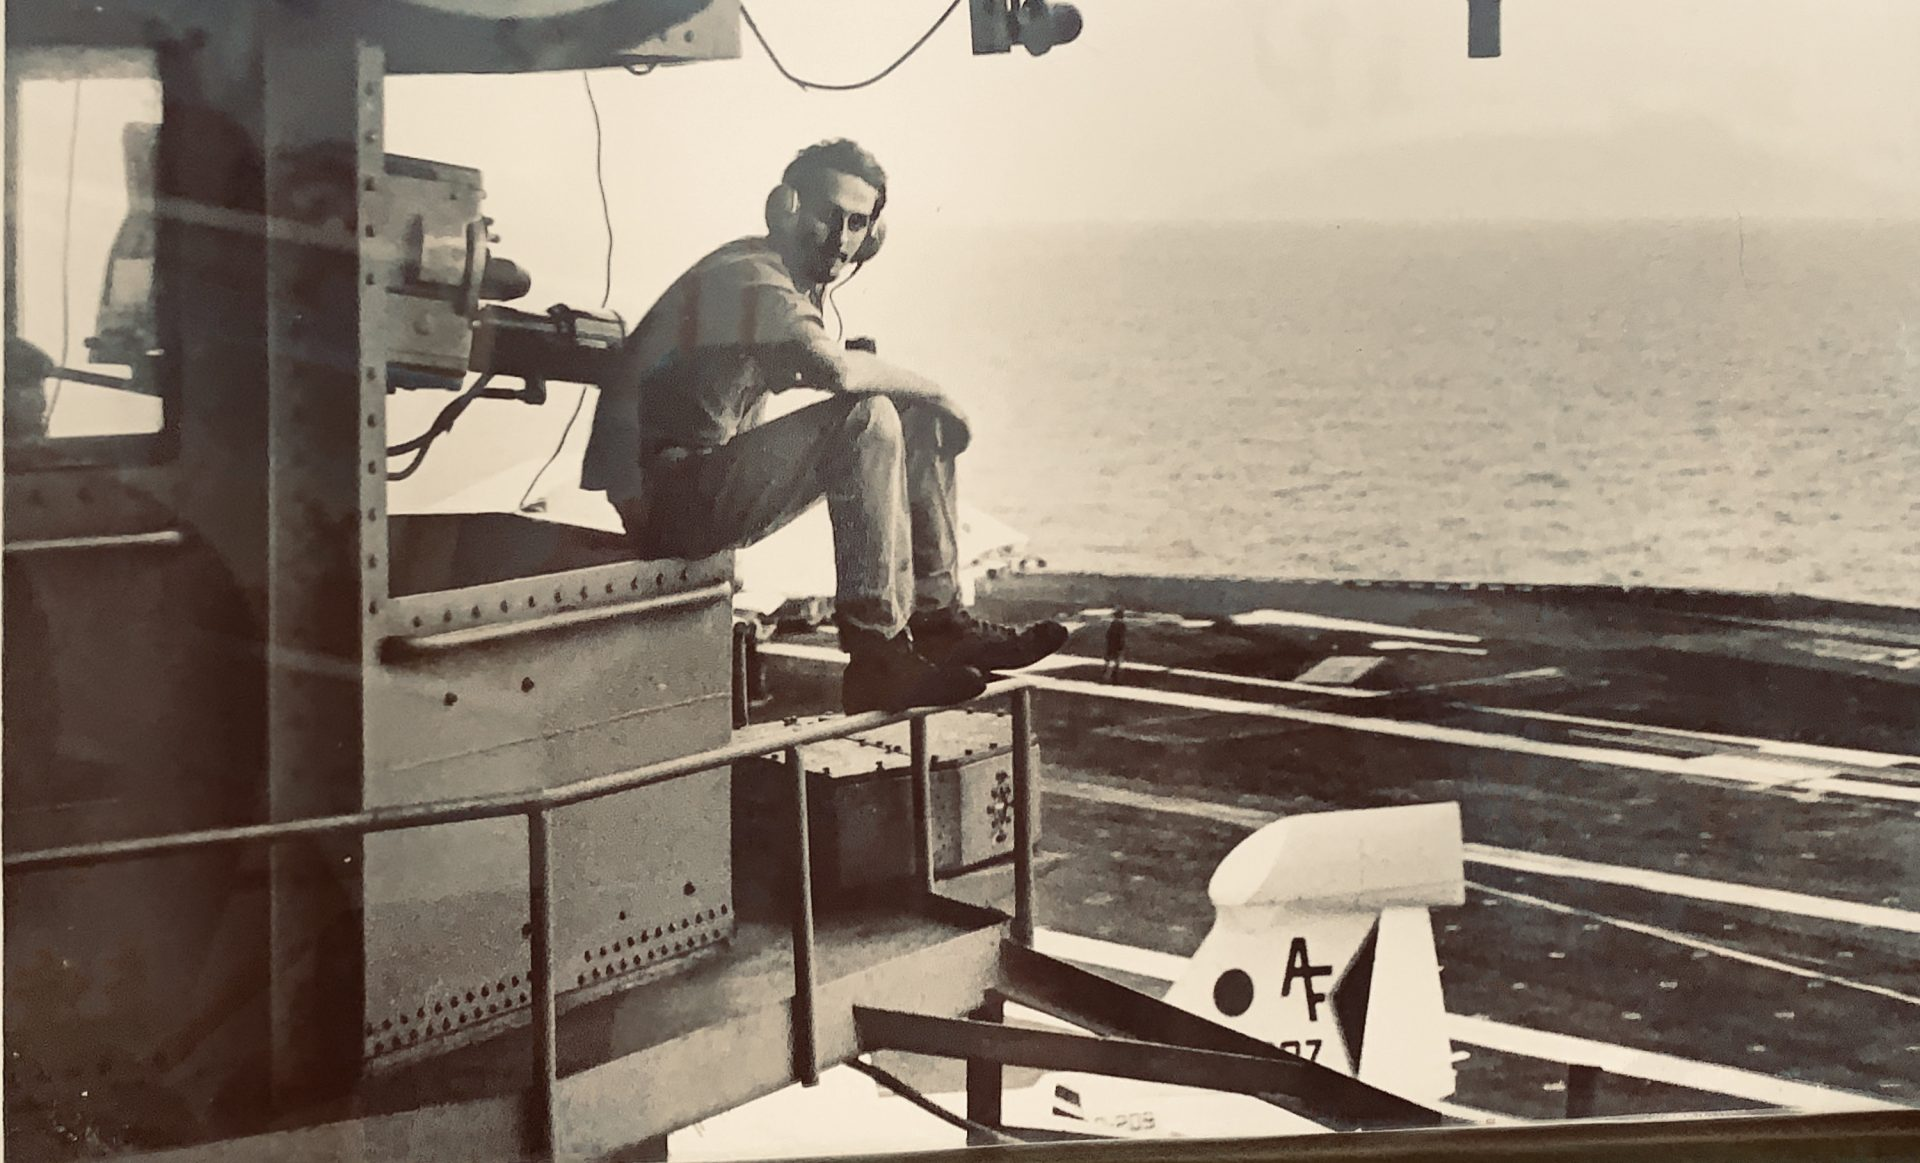 Dave in the US Navy on his aircraft carrier tower